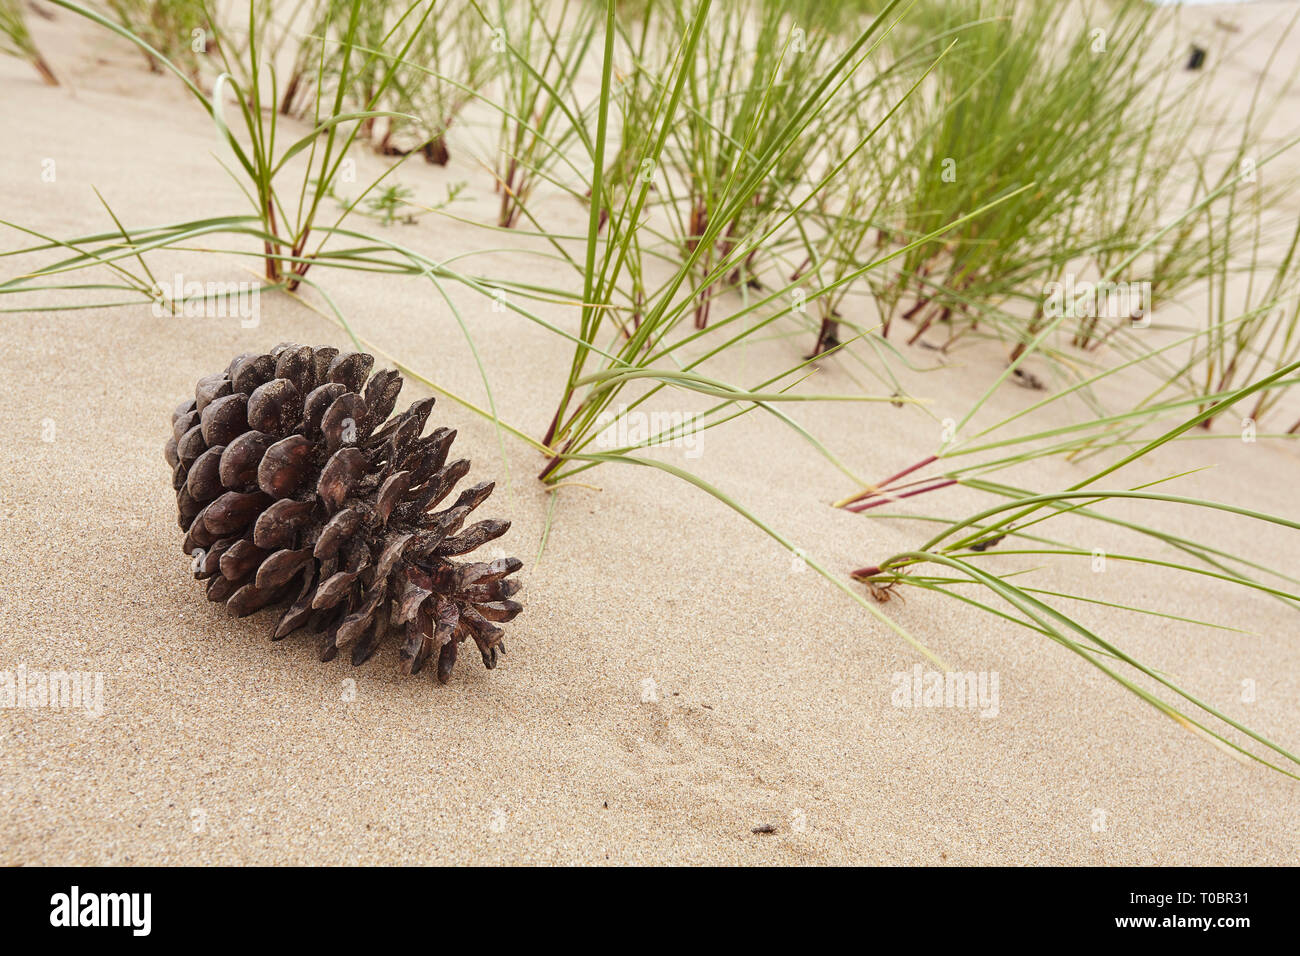 A pine cone on sand in dunes at Crow Point in the Taw and Torridge estuary, near Braunton, north Devon, Great Britain. - Stock Image